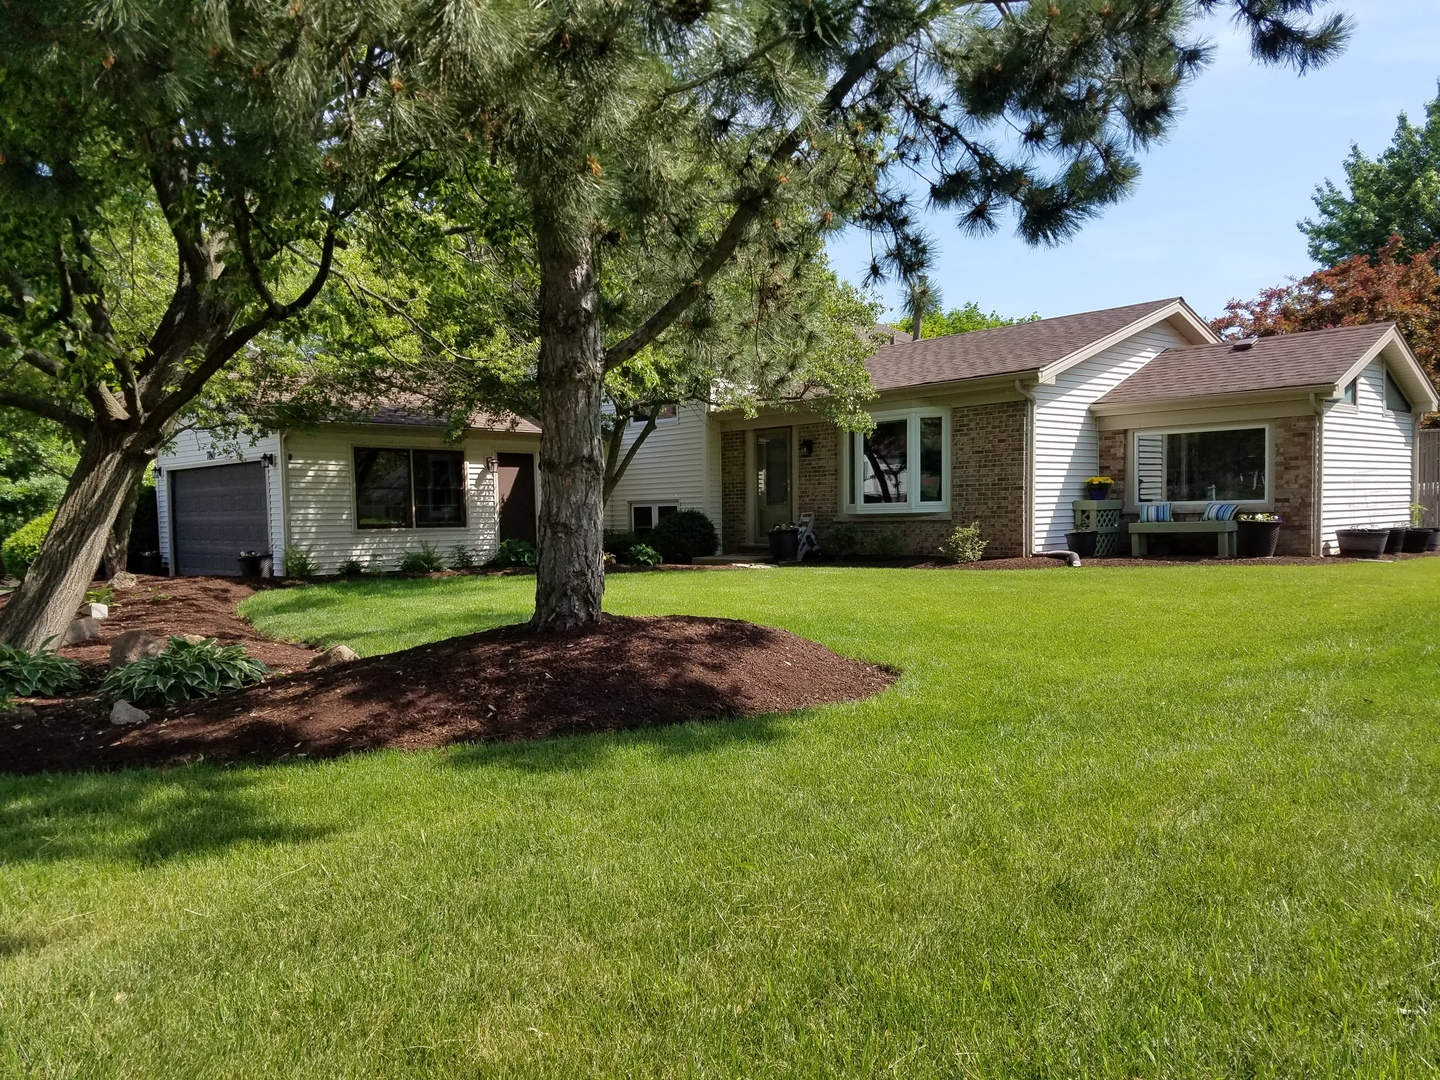 780 Beechwood Drive, Lake Zurich in Lake County, IL 60047 Home for Sale